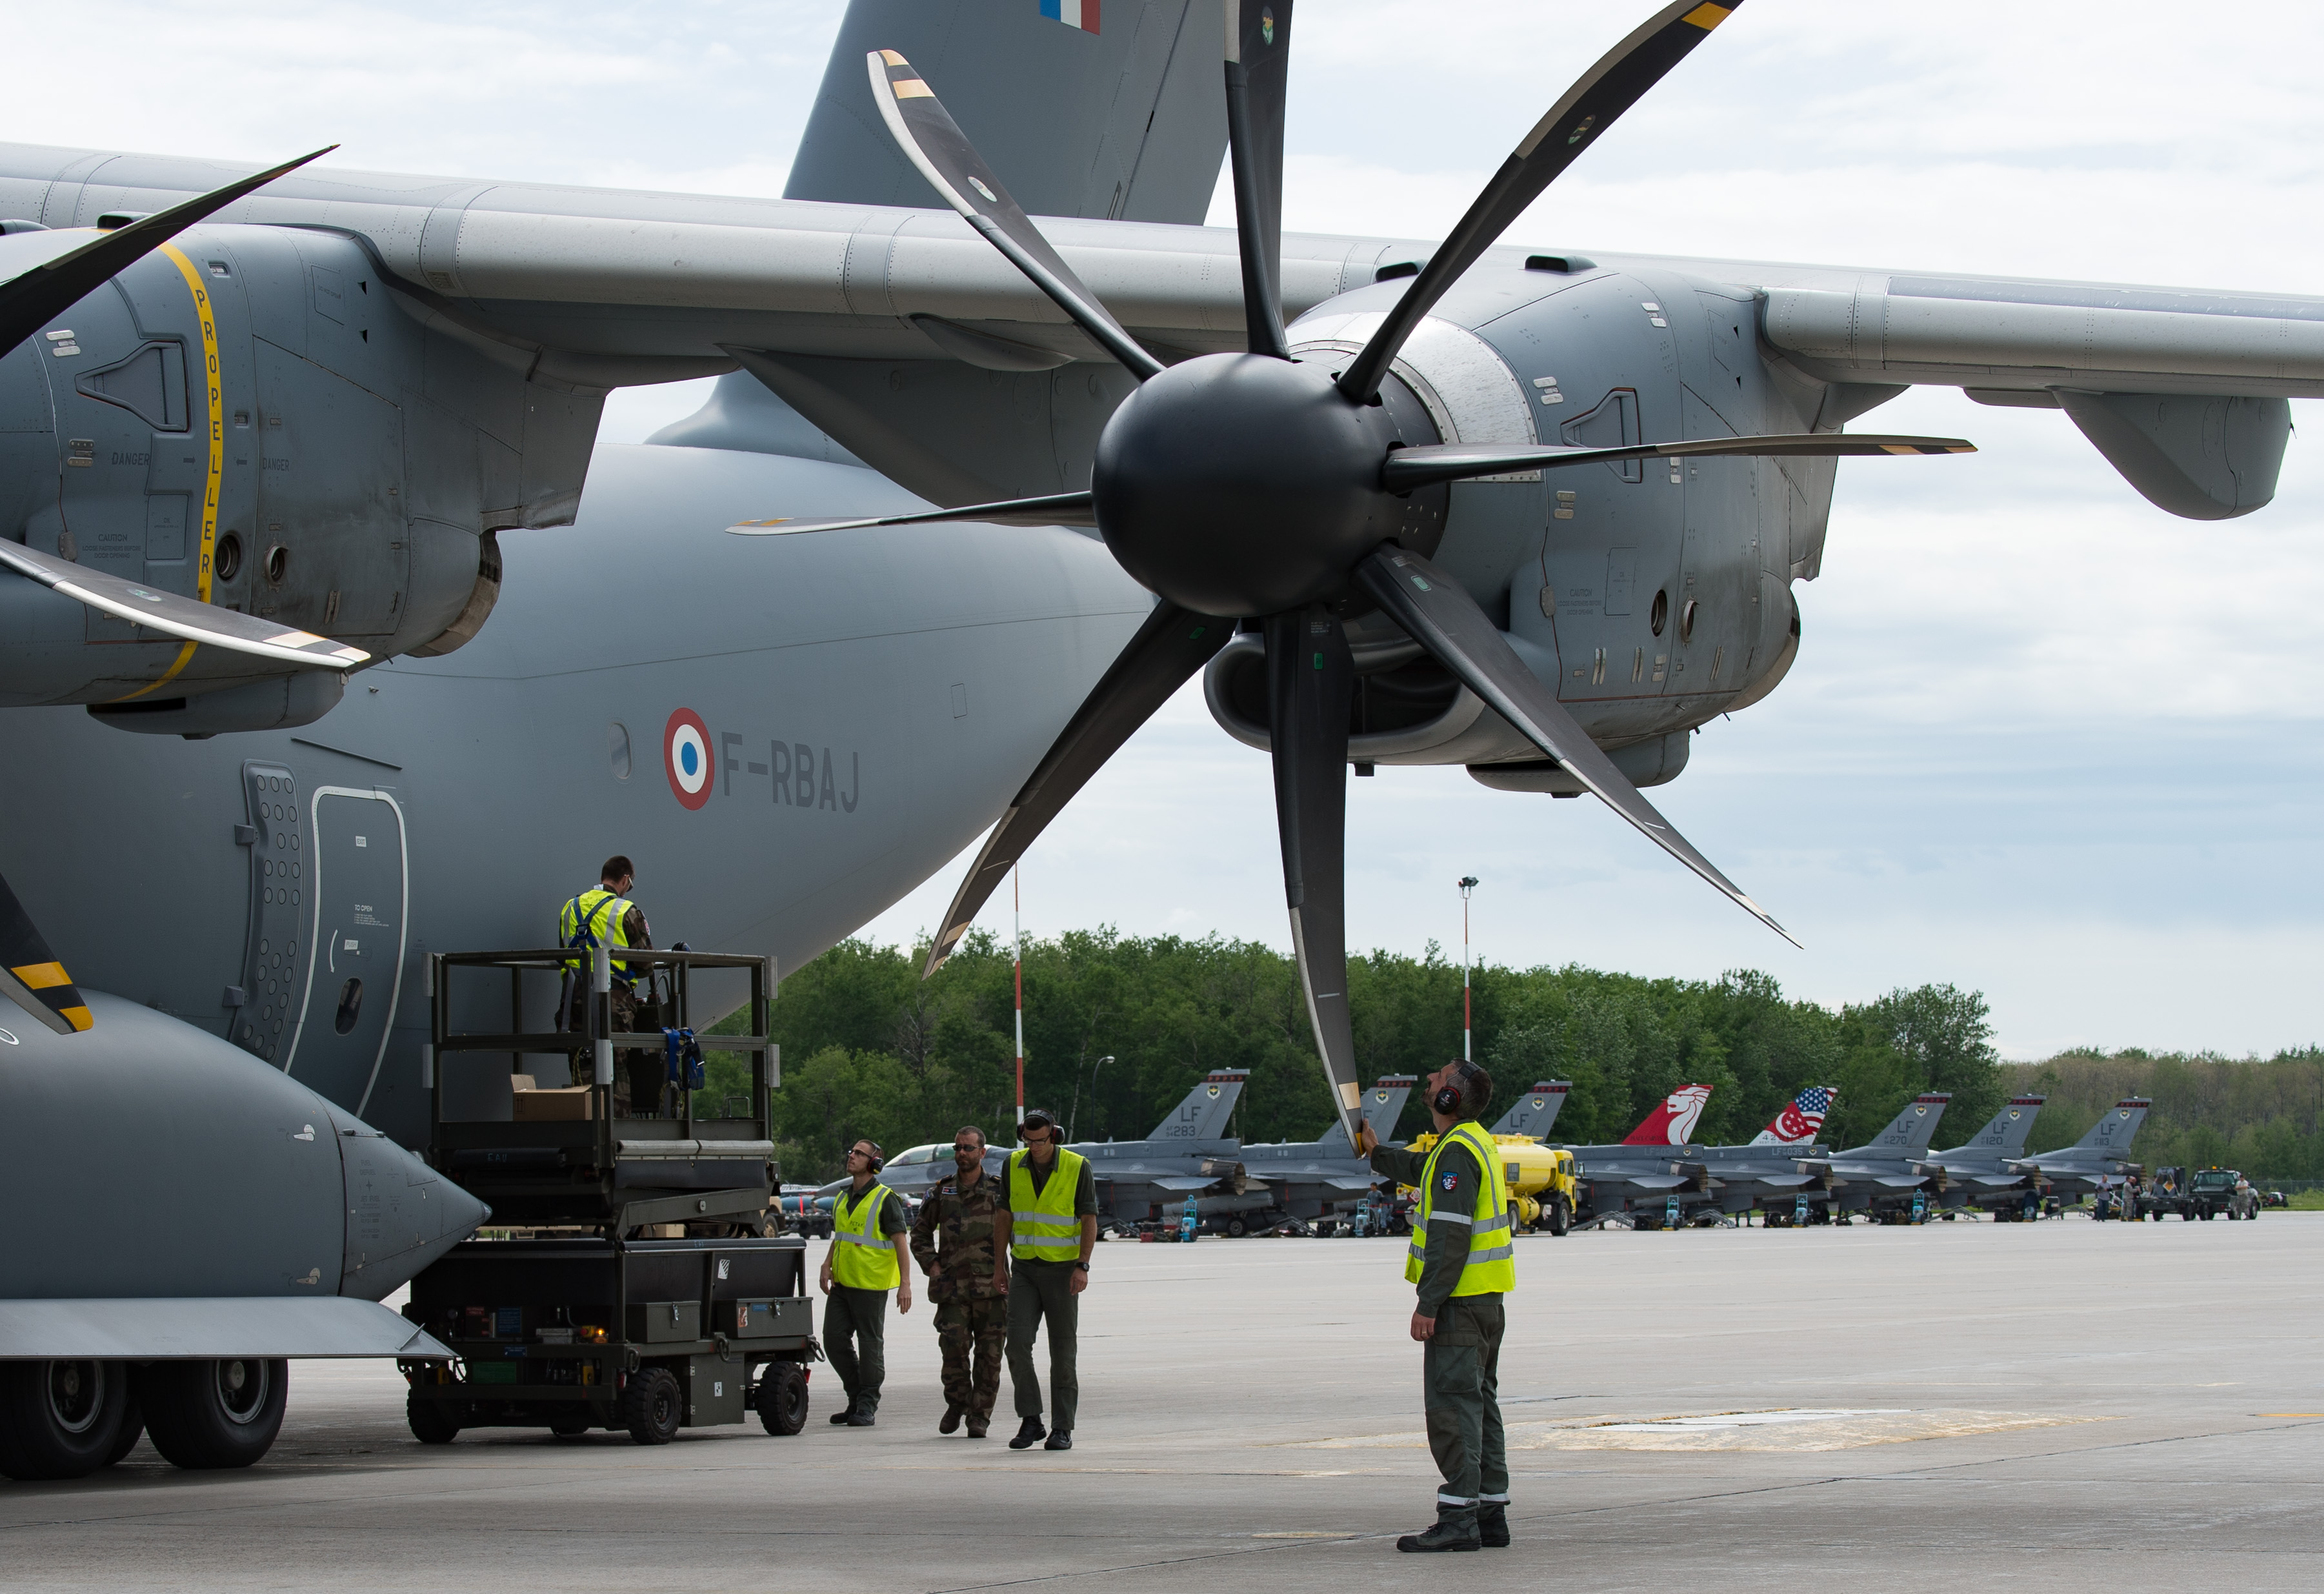 L'équipe au sol de l'Armée de l'Air française du A400M Atlas, effectuent des vérifications de maintenance après la vague du matin de l'Exercice Maple Flag 50, à la 4e Escadre de Cold Lake, le 12 juin 2017. PHOTO : Caporal-chef Heather MacRae, CK10-2017-0460-016